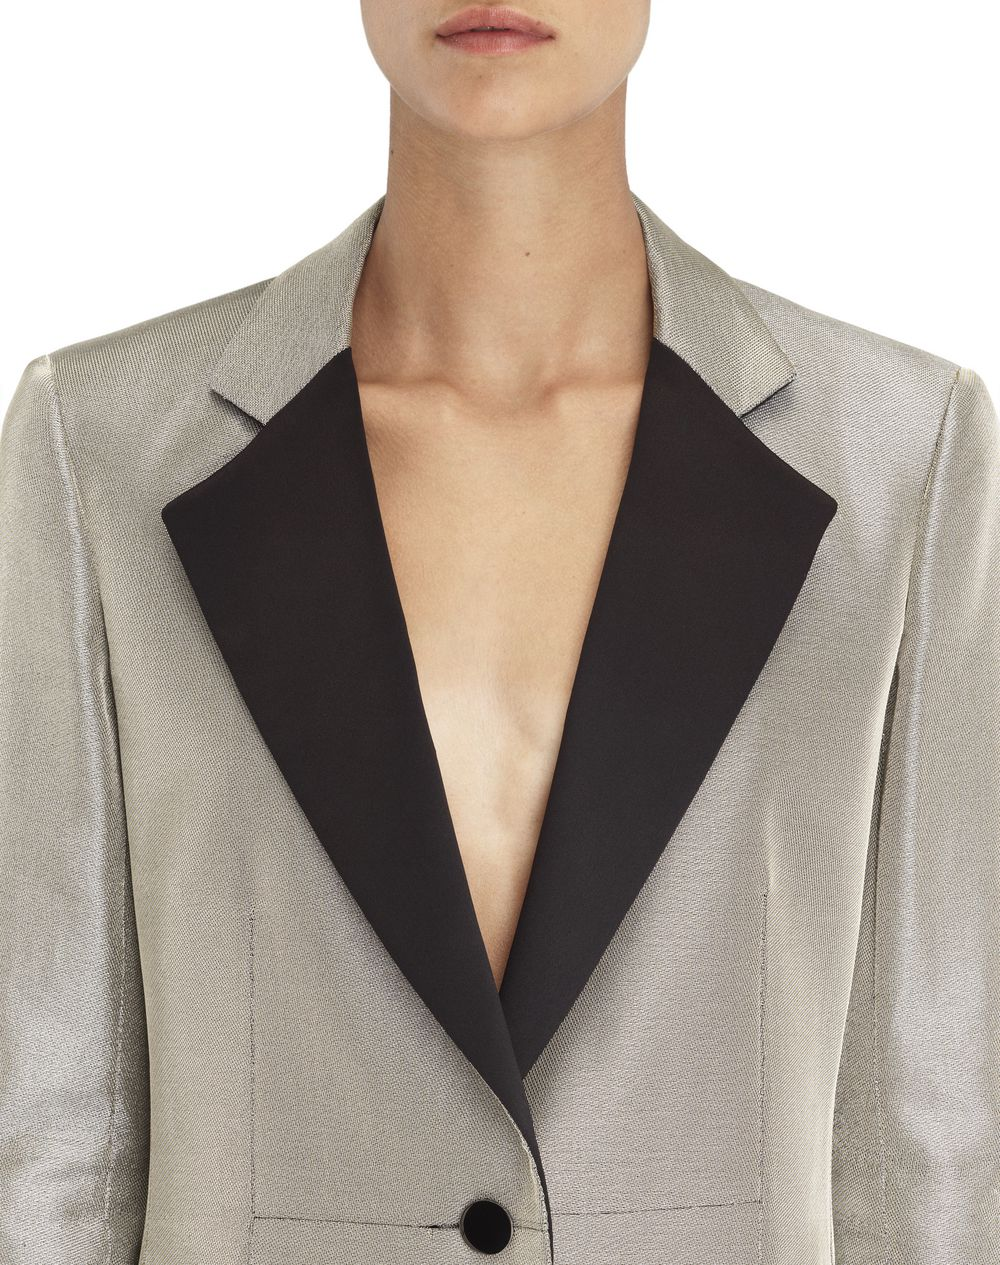 METALLIC LUREX JACKET - Lanvin